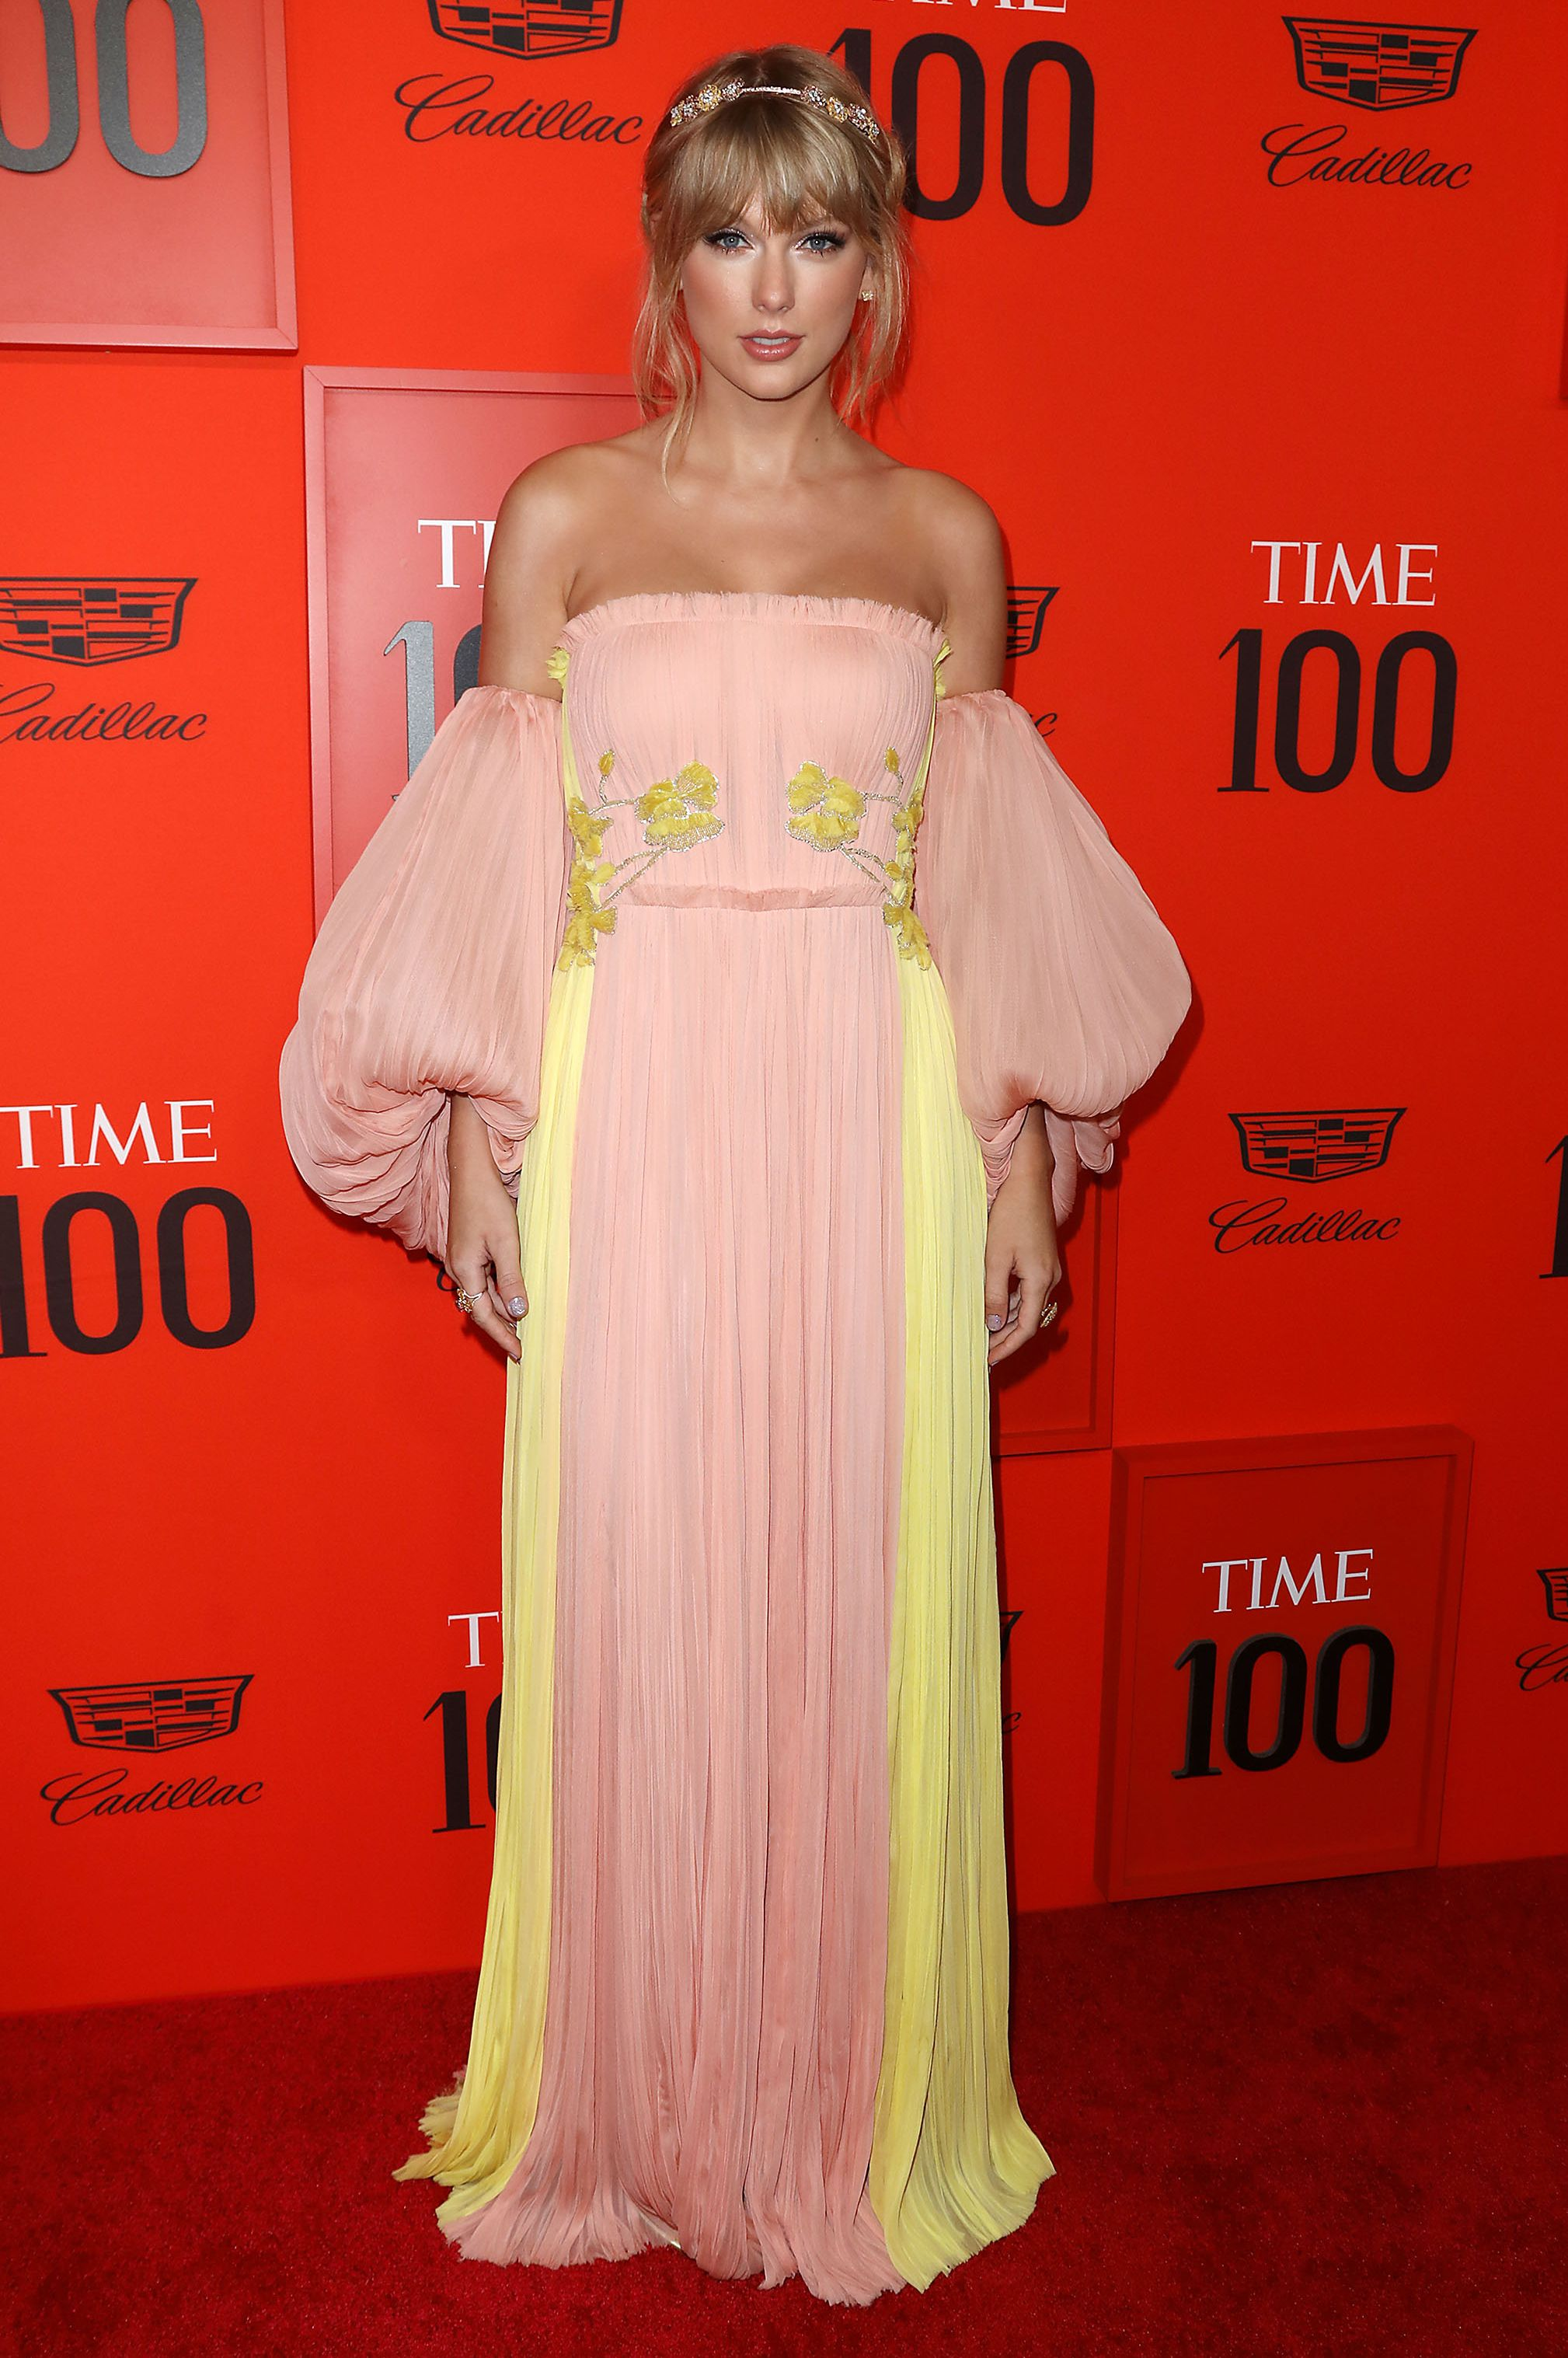 Taylor Swift's Style File - Every One Of Her Country Glam Outfits